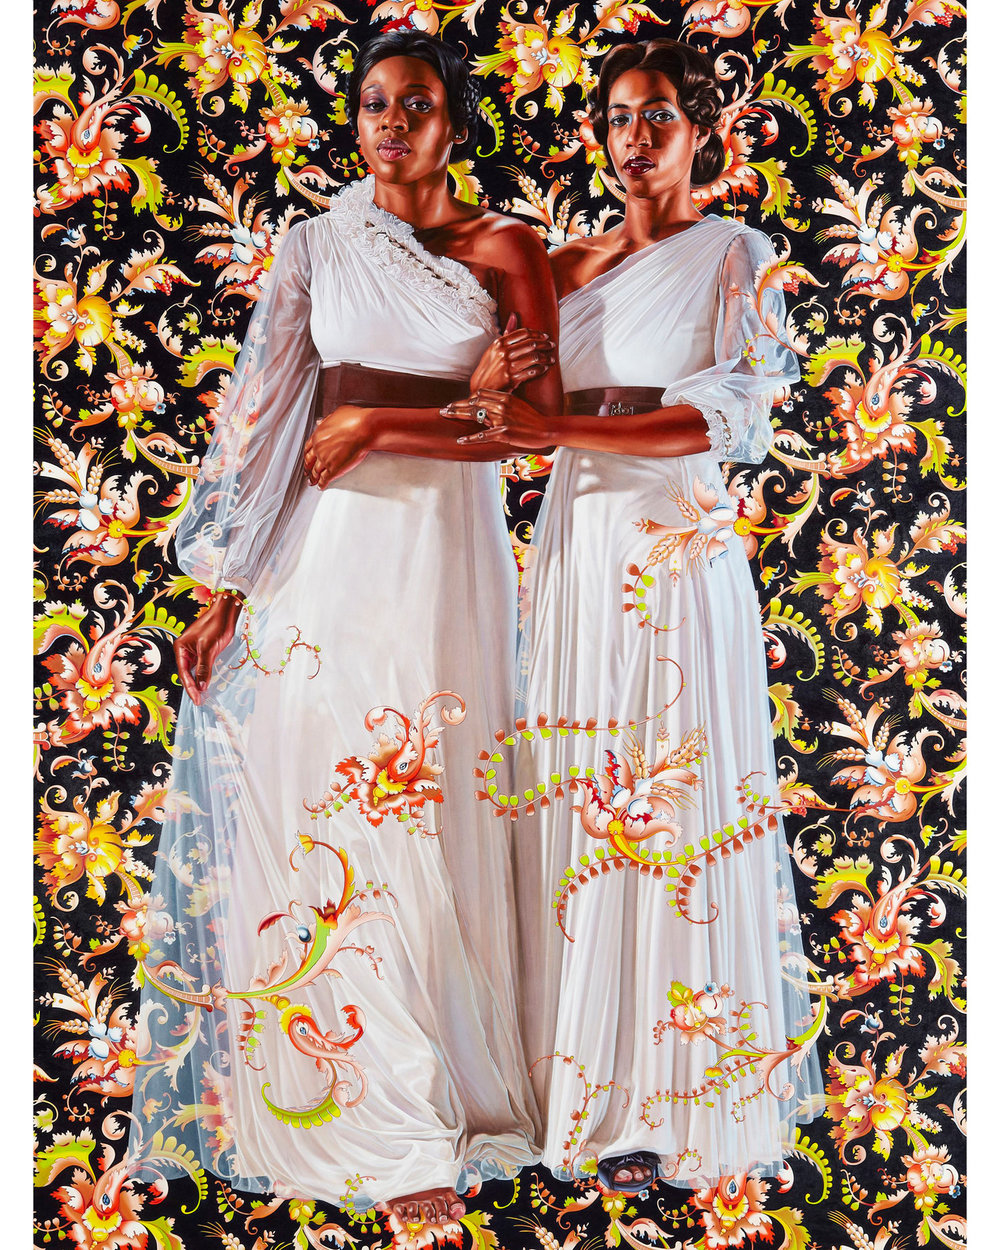 article_kehinde_wiley_the_two_sisters_2000x2500_0.jpg